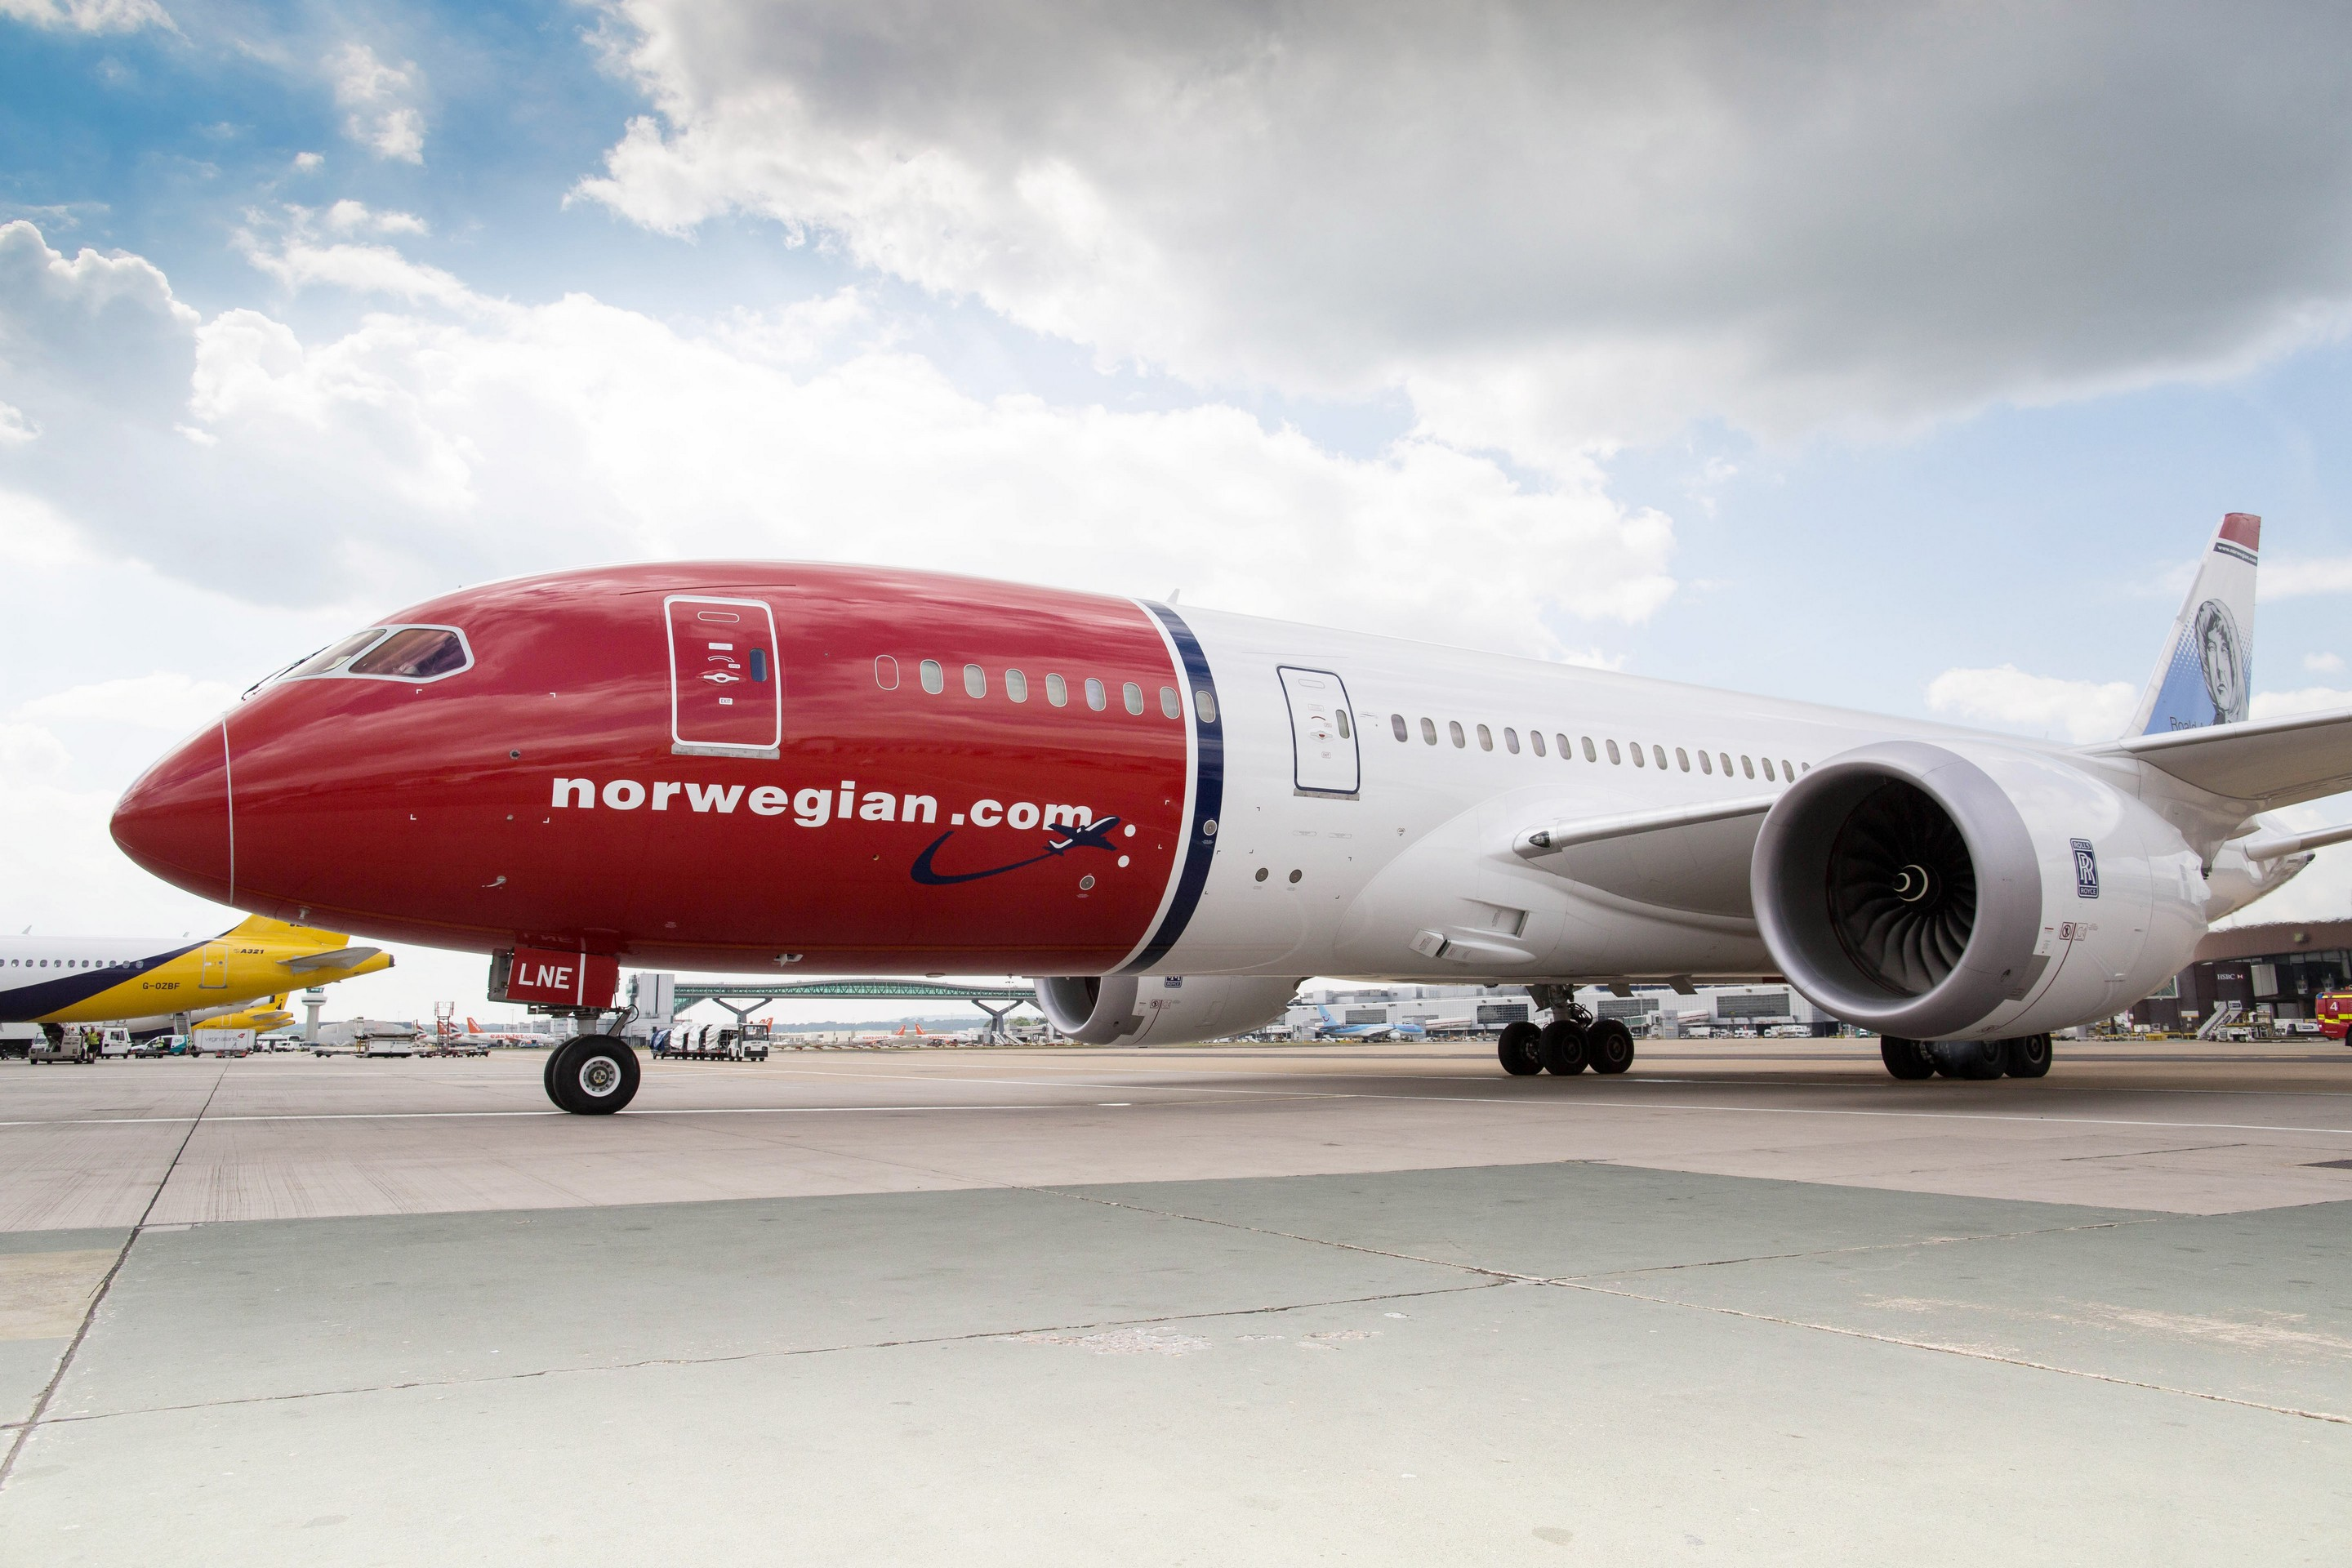 Norwegian, Sweden, tax, Denmark, Copenhagen, flights, winter, divert, capacity, Mediterranean, Aalborg, Tallinn, USA, long-haul